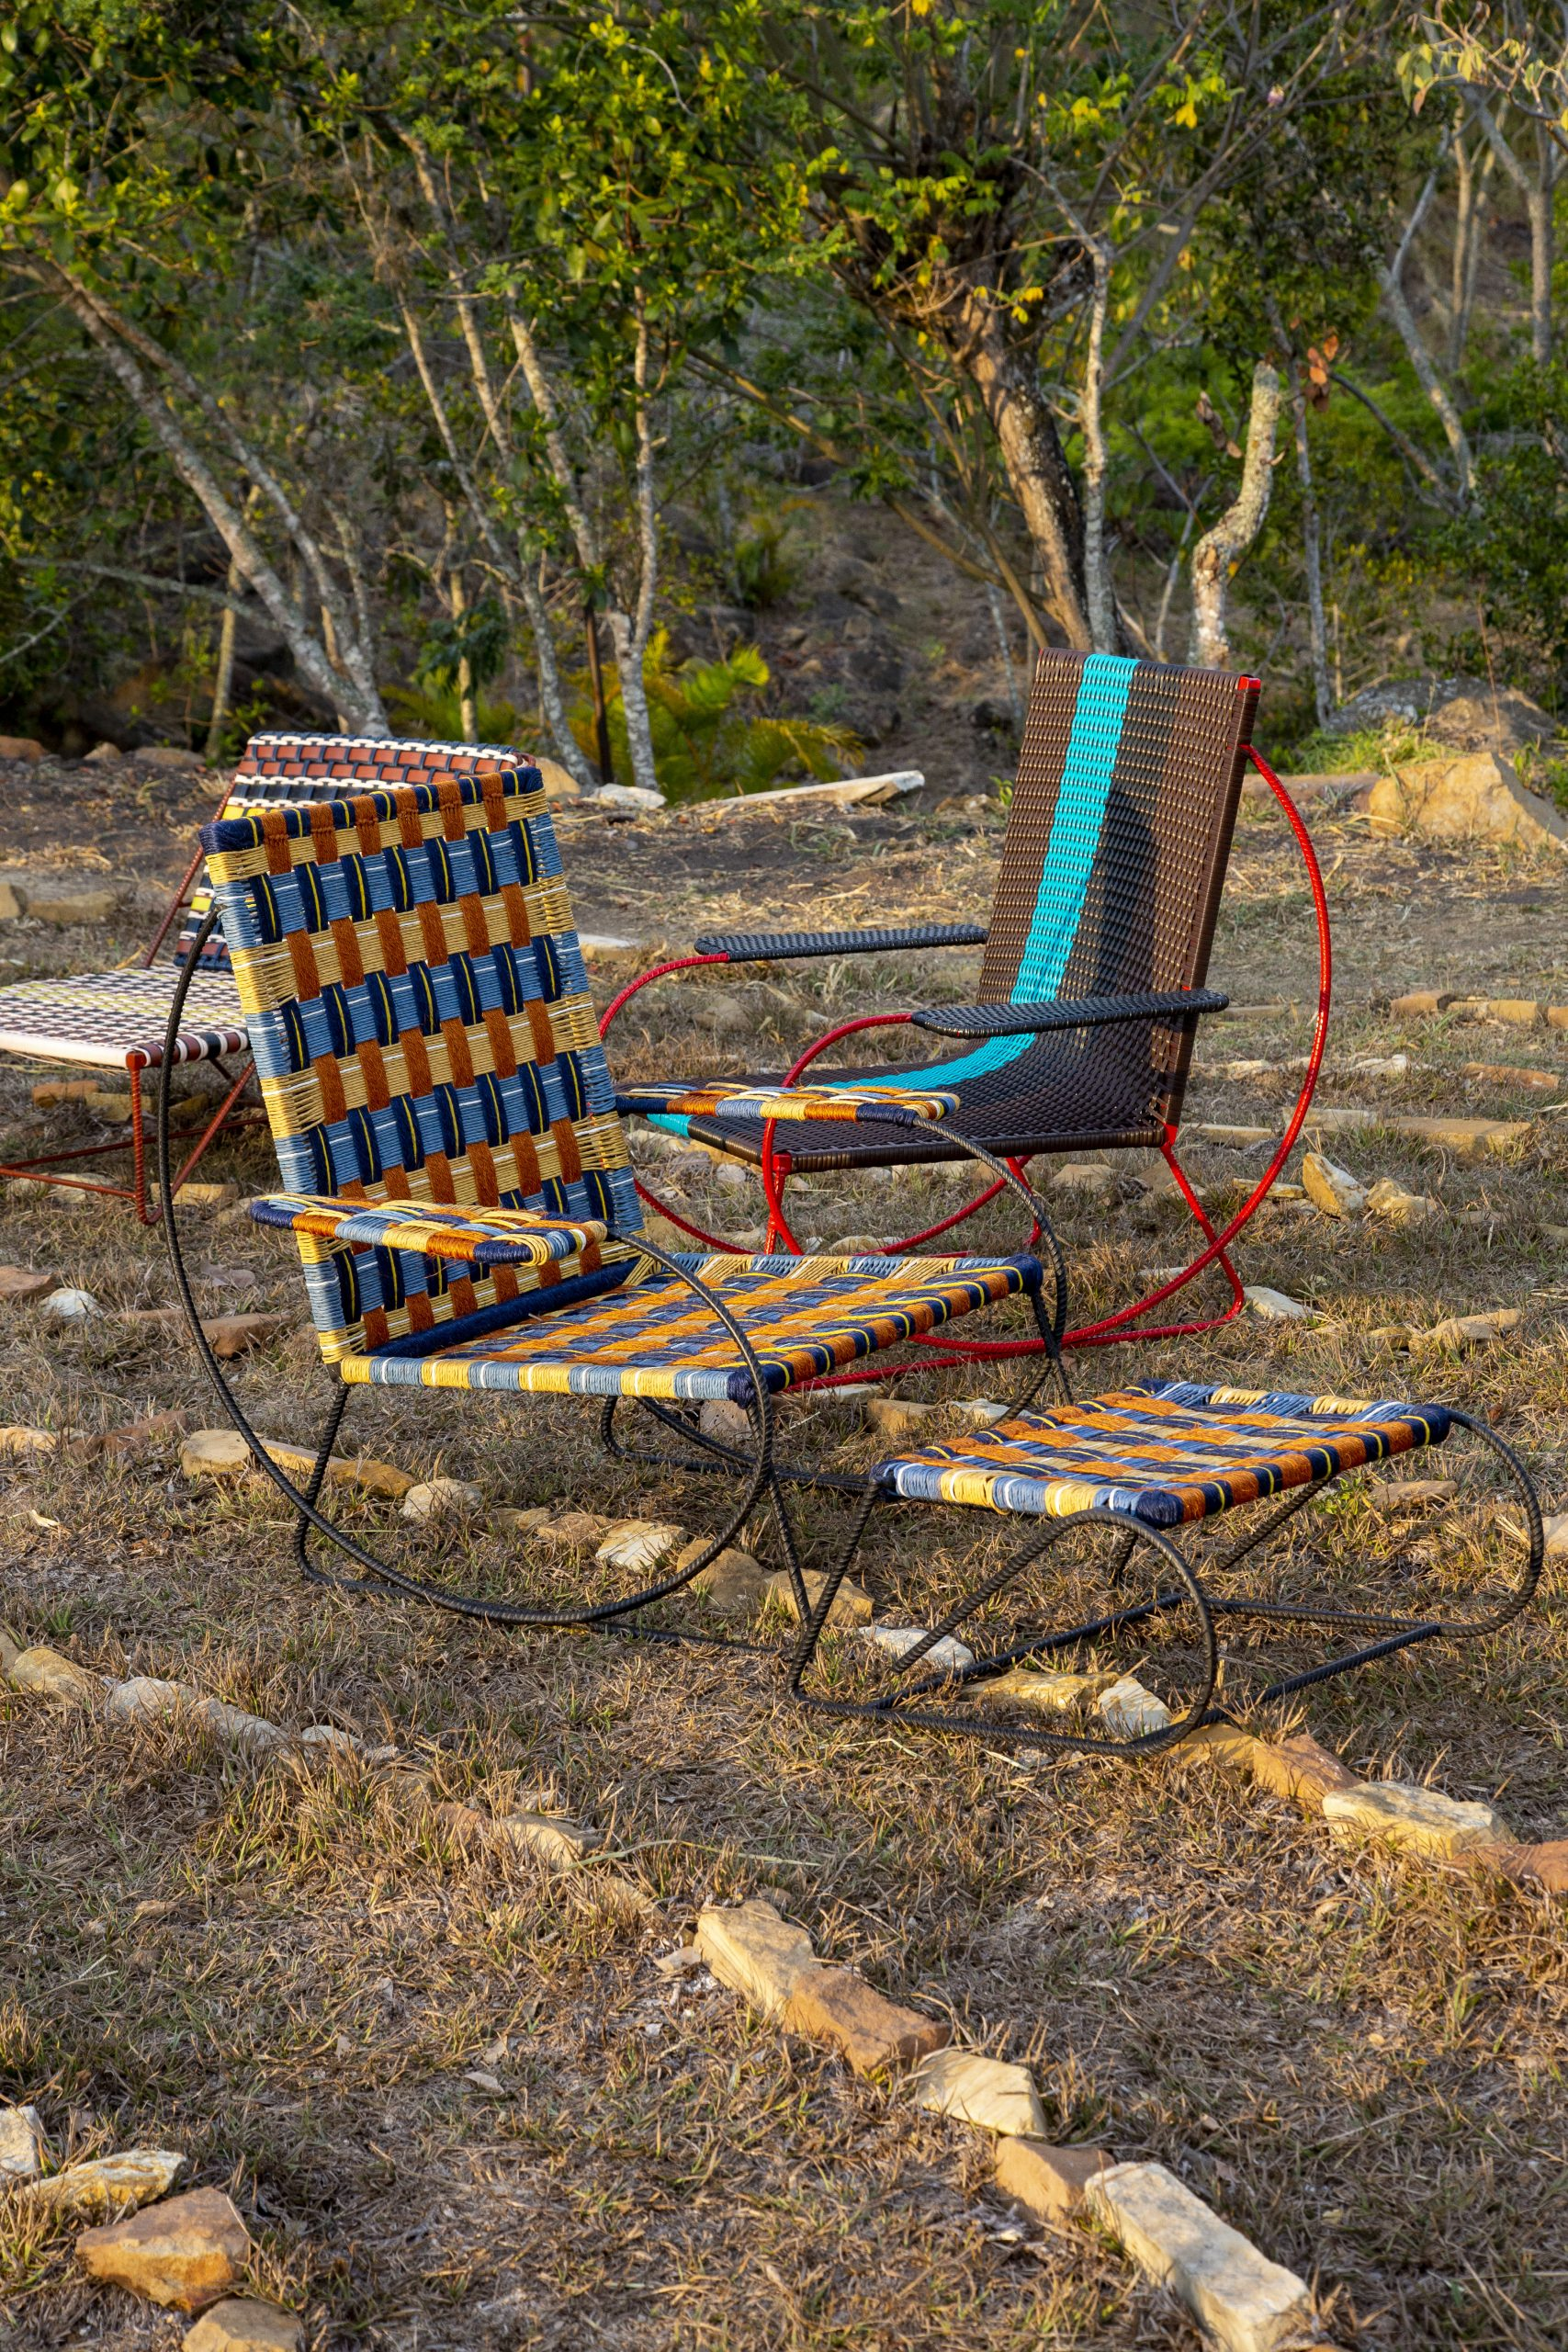 Marni Collaborates with Farfetch To Launch Zooterico Home Collection